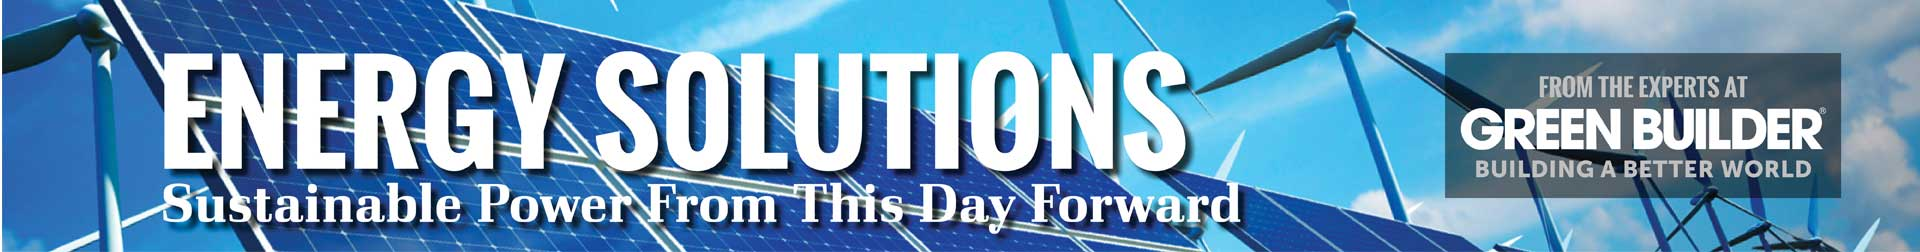 Energy Solutions Banner